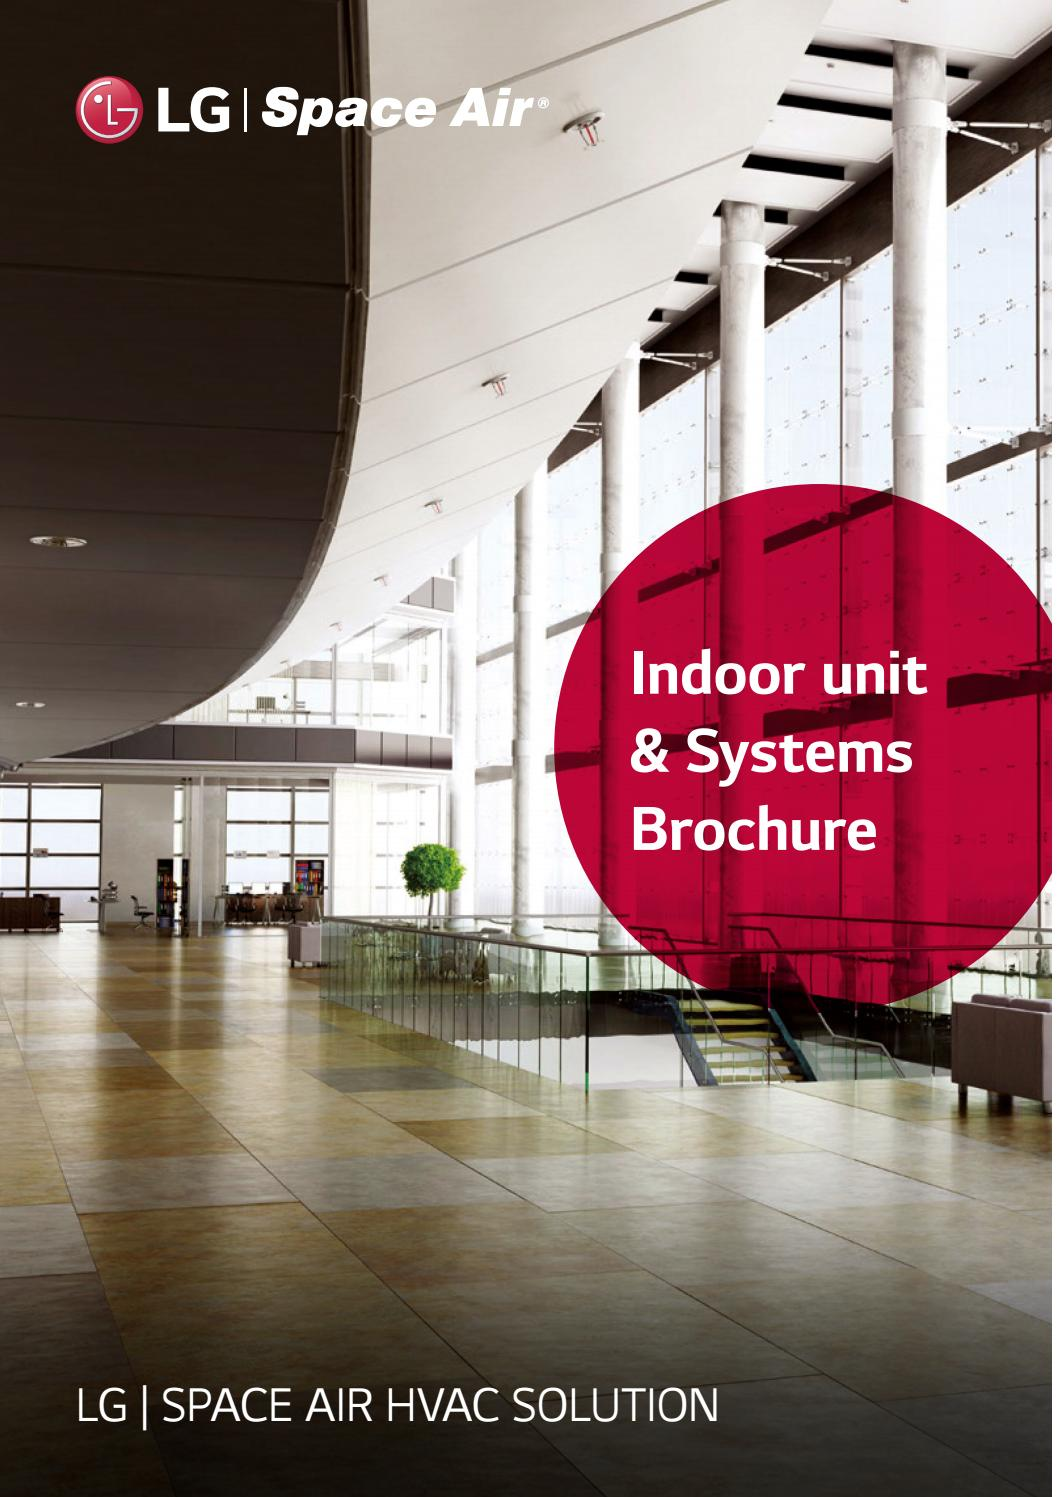 Lg Ac Indoor Styles And Systems By Spaceair1 Issuu